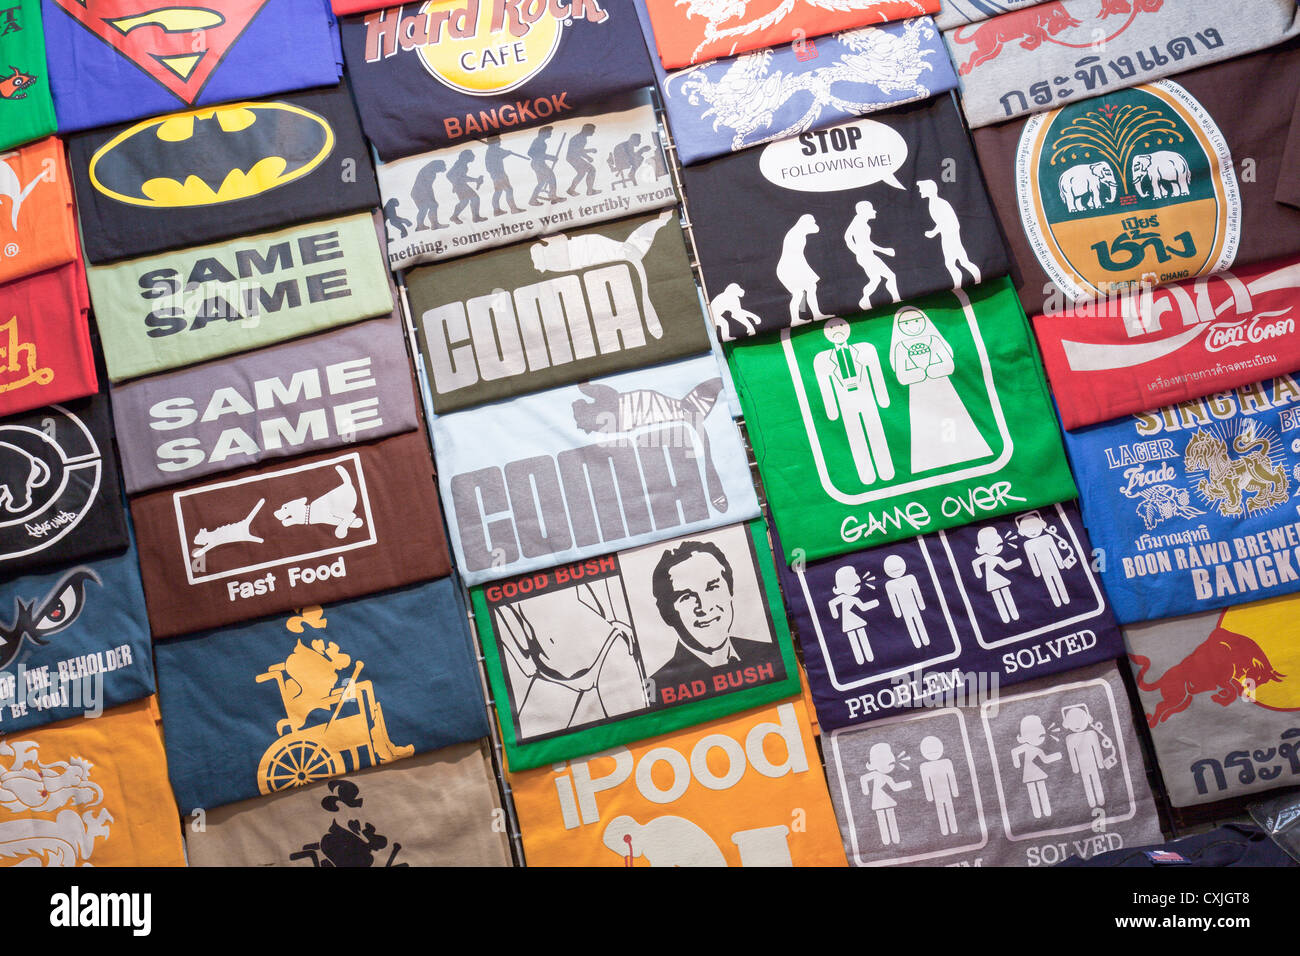 Tee shirts on sale in the night market, Thanon Changklan, Chiang Mai, Thailand - Stock Image